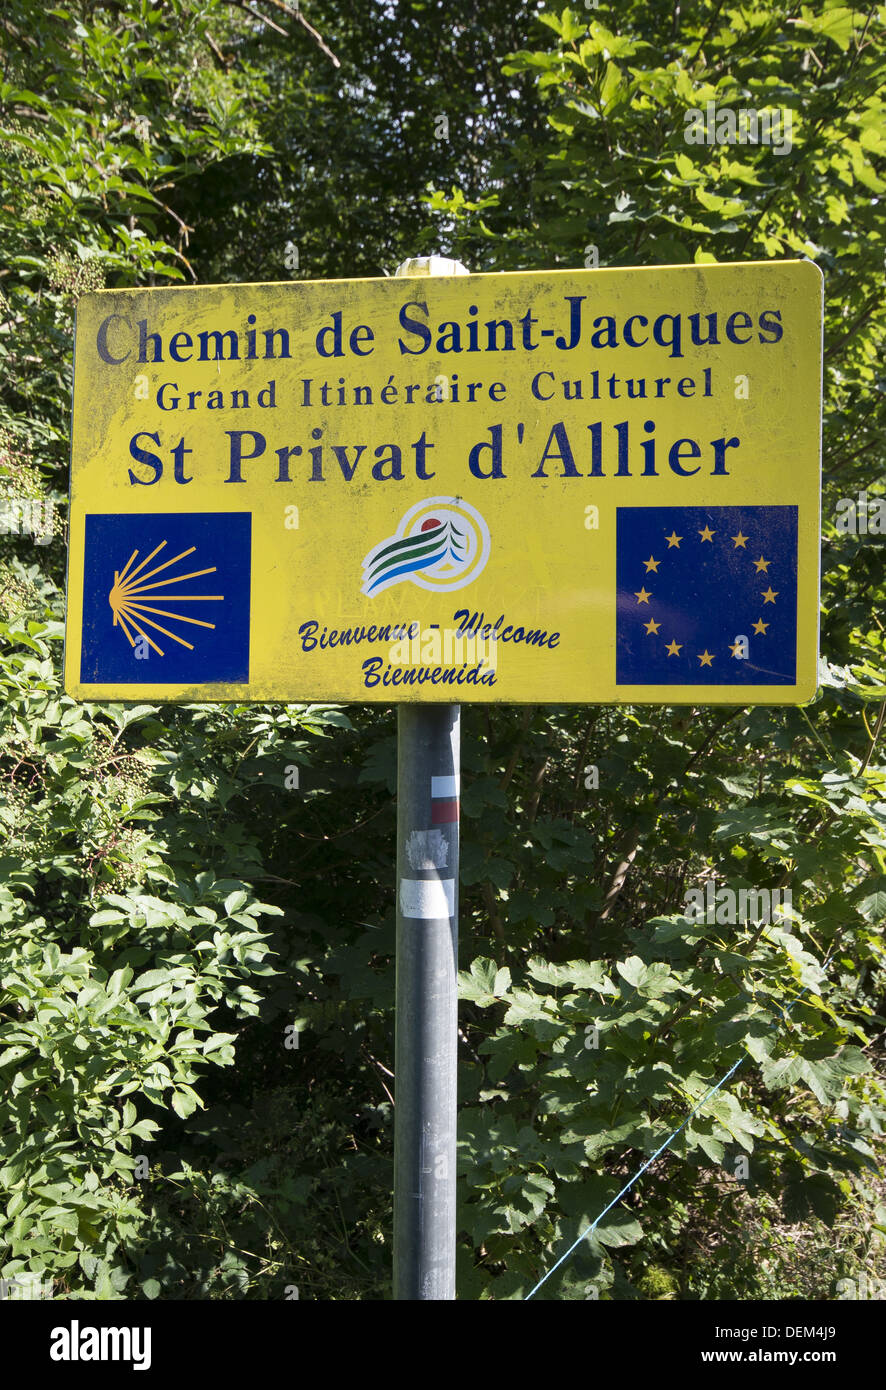 Village sign in St-Privat-d'Allier on the GR65 route, The way of St James, France - Stock Image